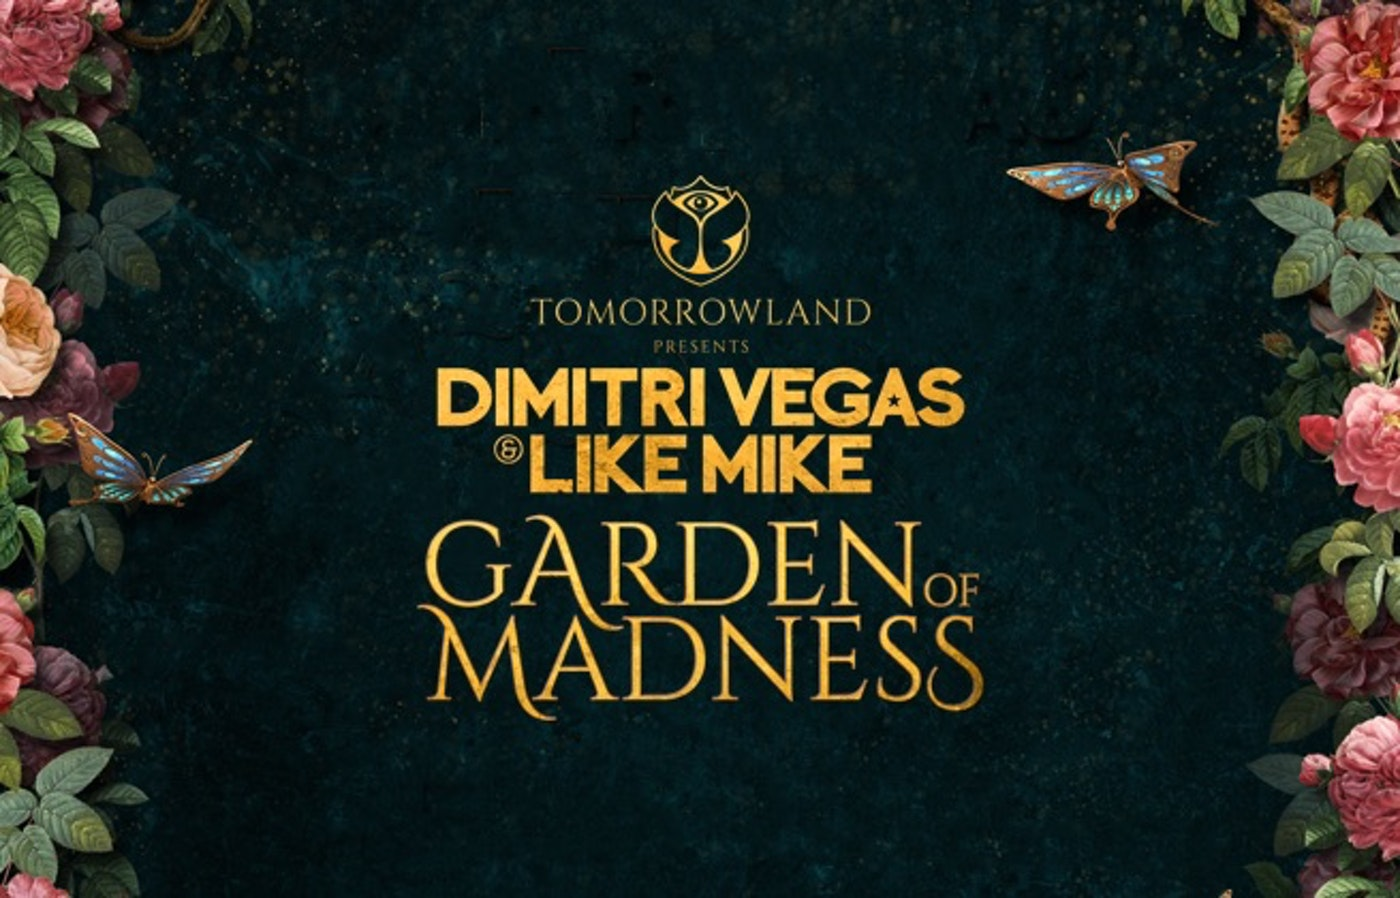 Tomorrowland Garden of Madness